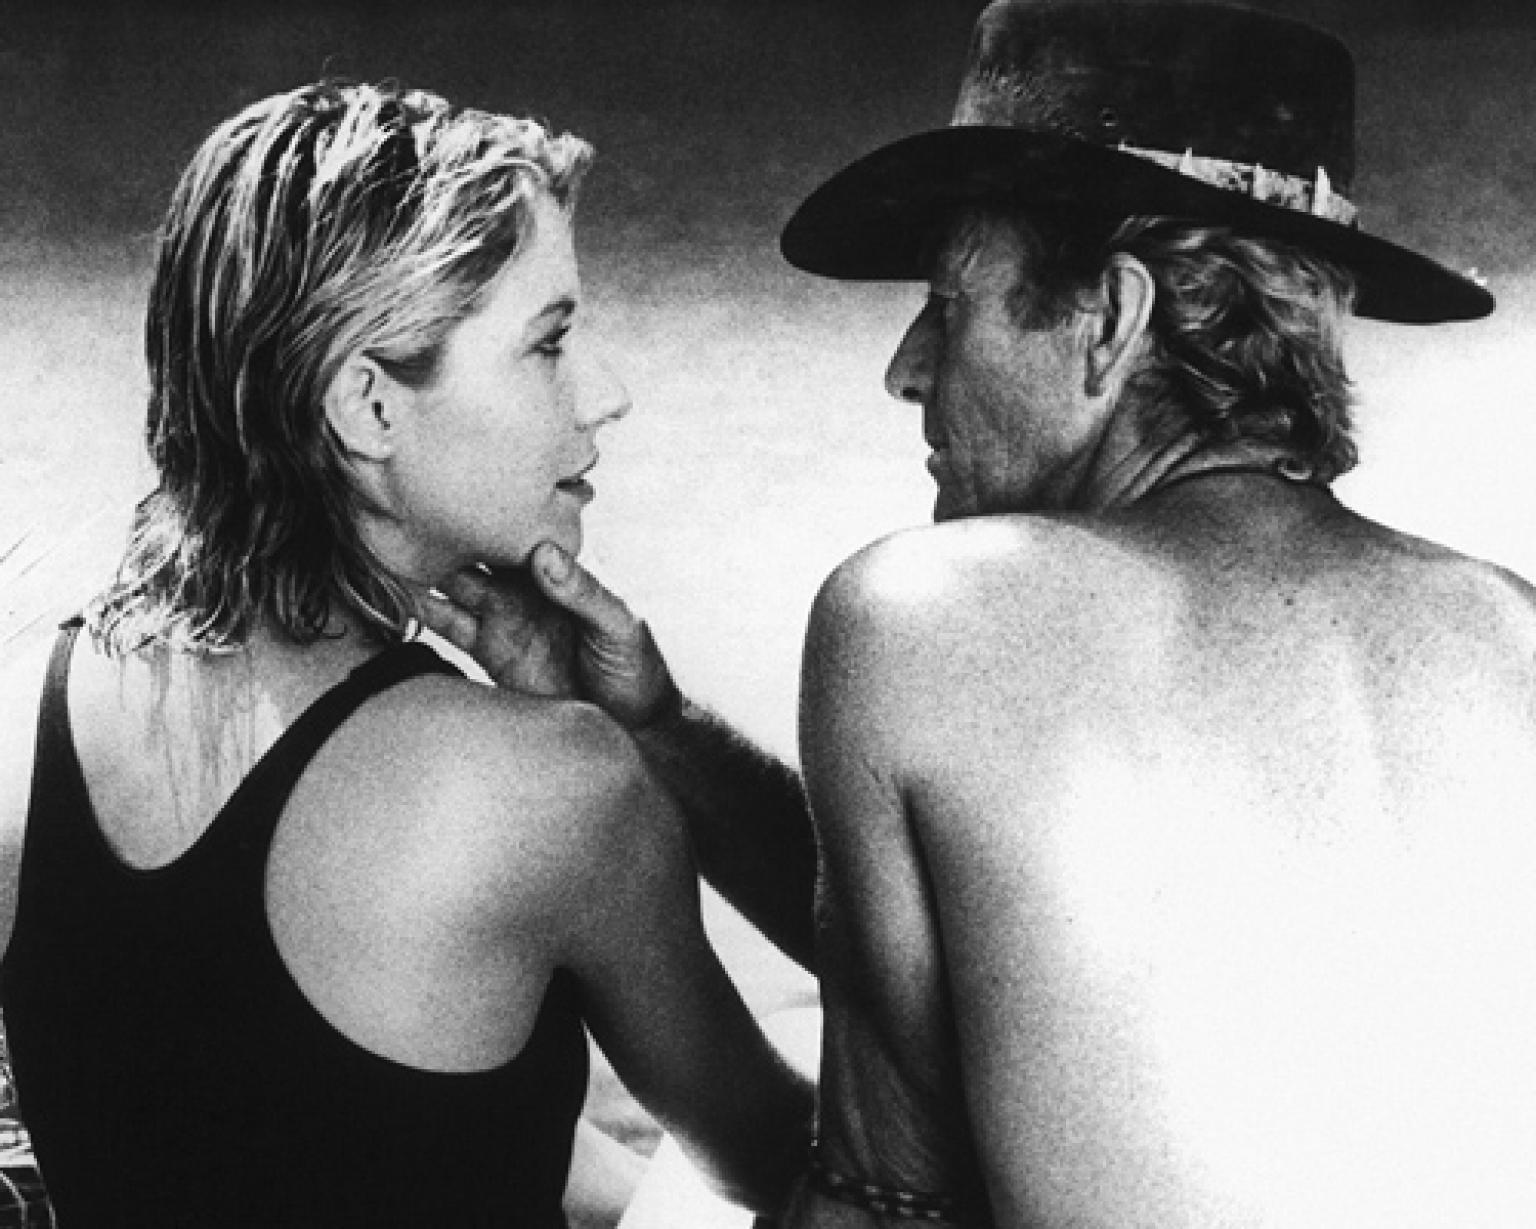 Linda Kozlowski as Sue Charlton and Paul Hogan as Mick 'Crocodile' Dundee sitting by a waterhole. He is touching her face and they are staring at each other.